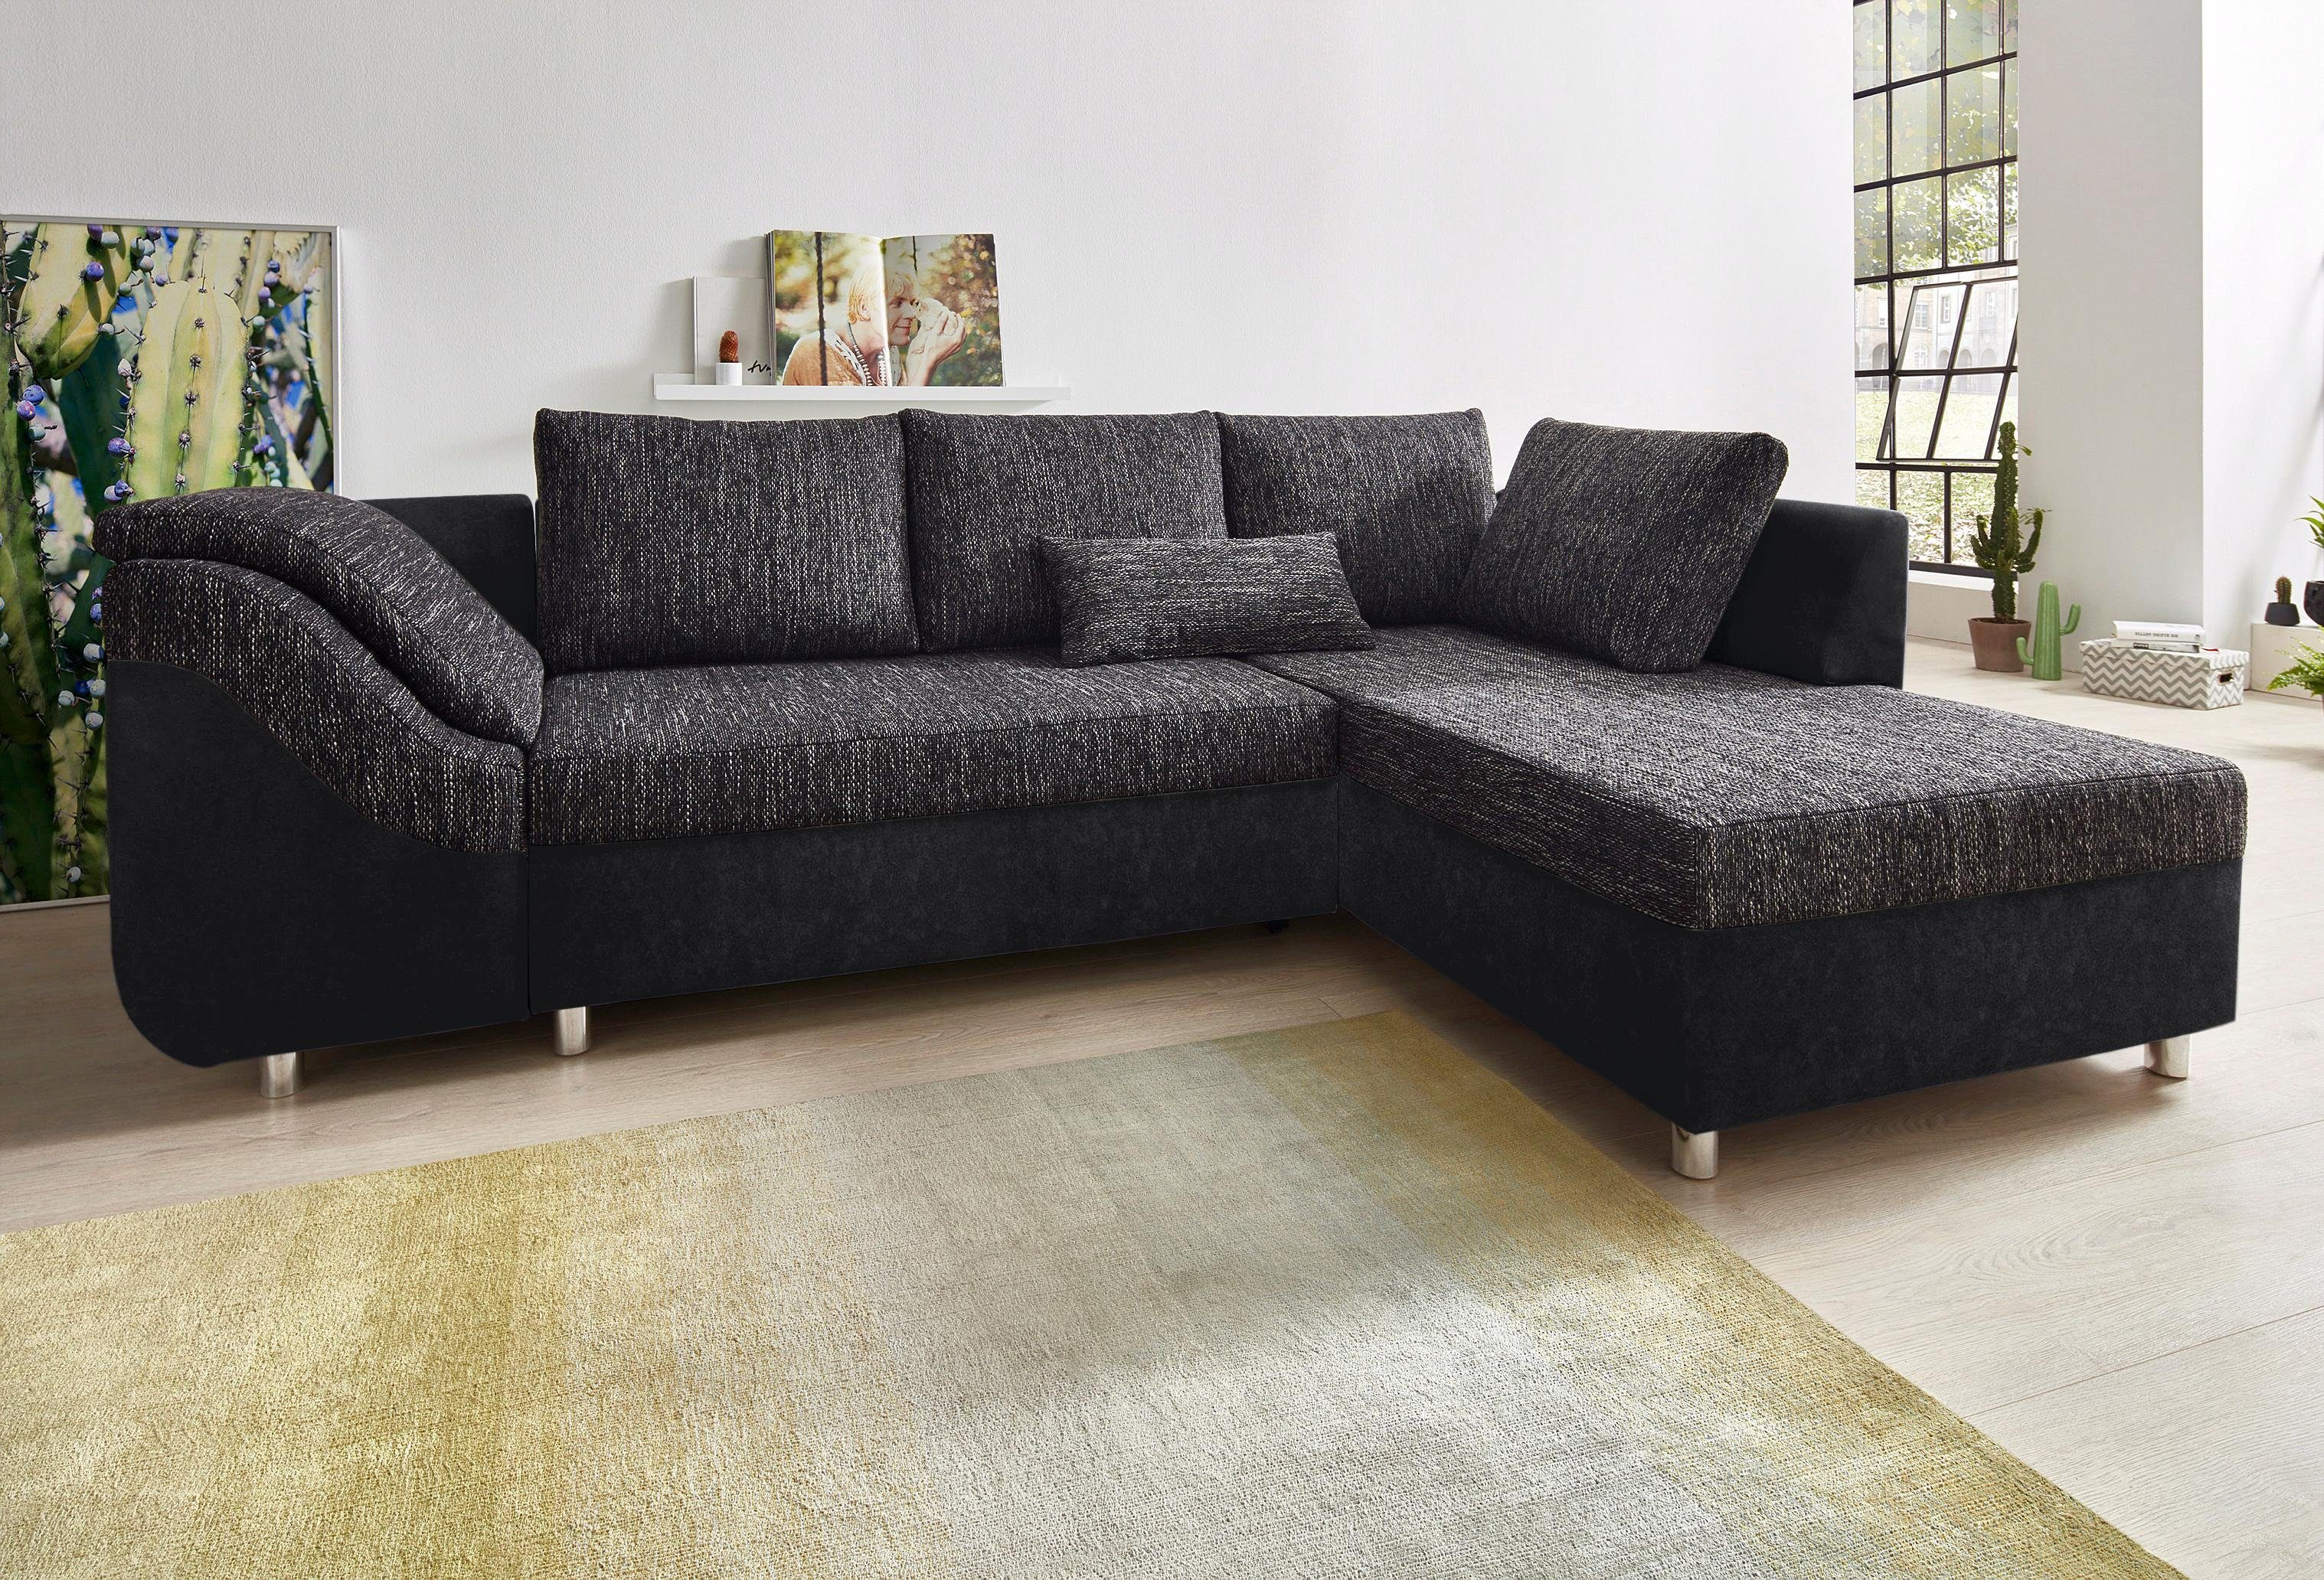 Eckcouch Mit Bettfunktion Collection Ab Polsterecke Mit Bettfunktion Und Bettkasten